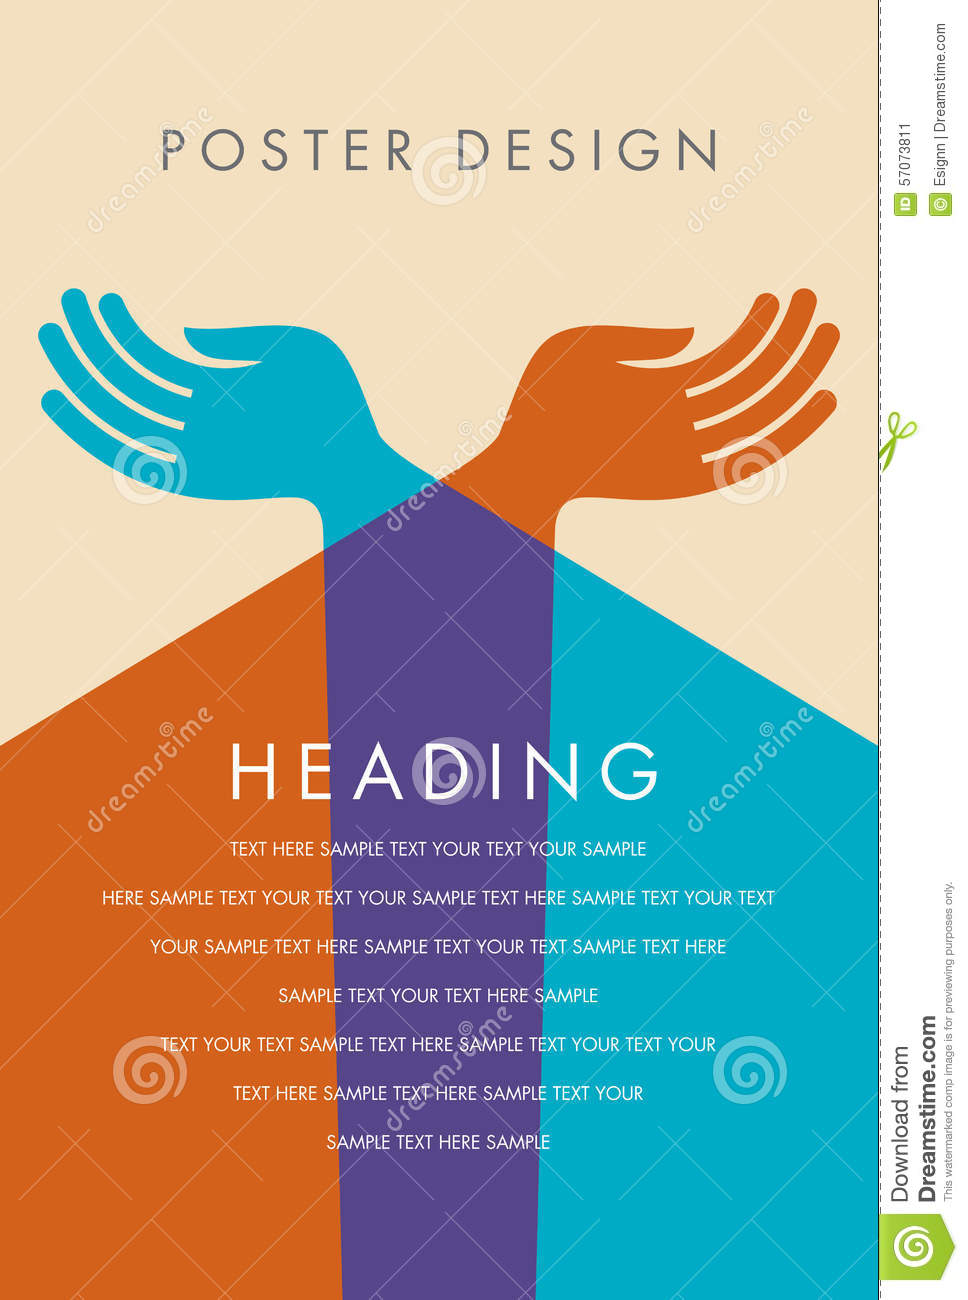 Design illustration poster vector youth